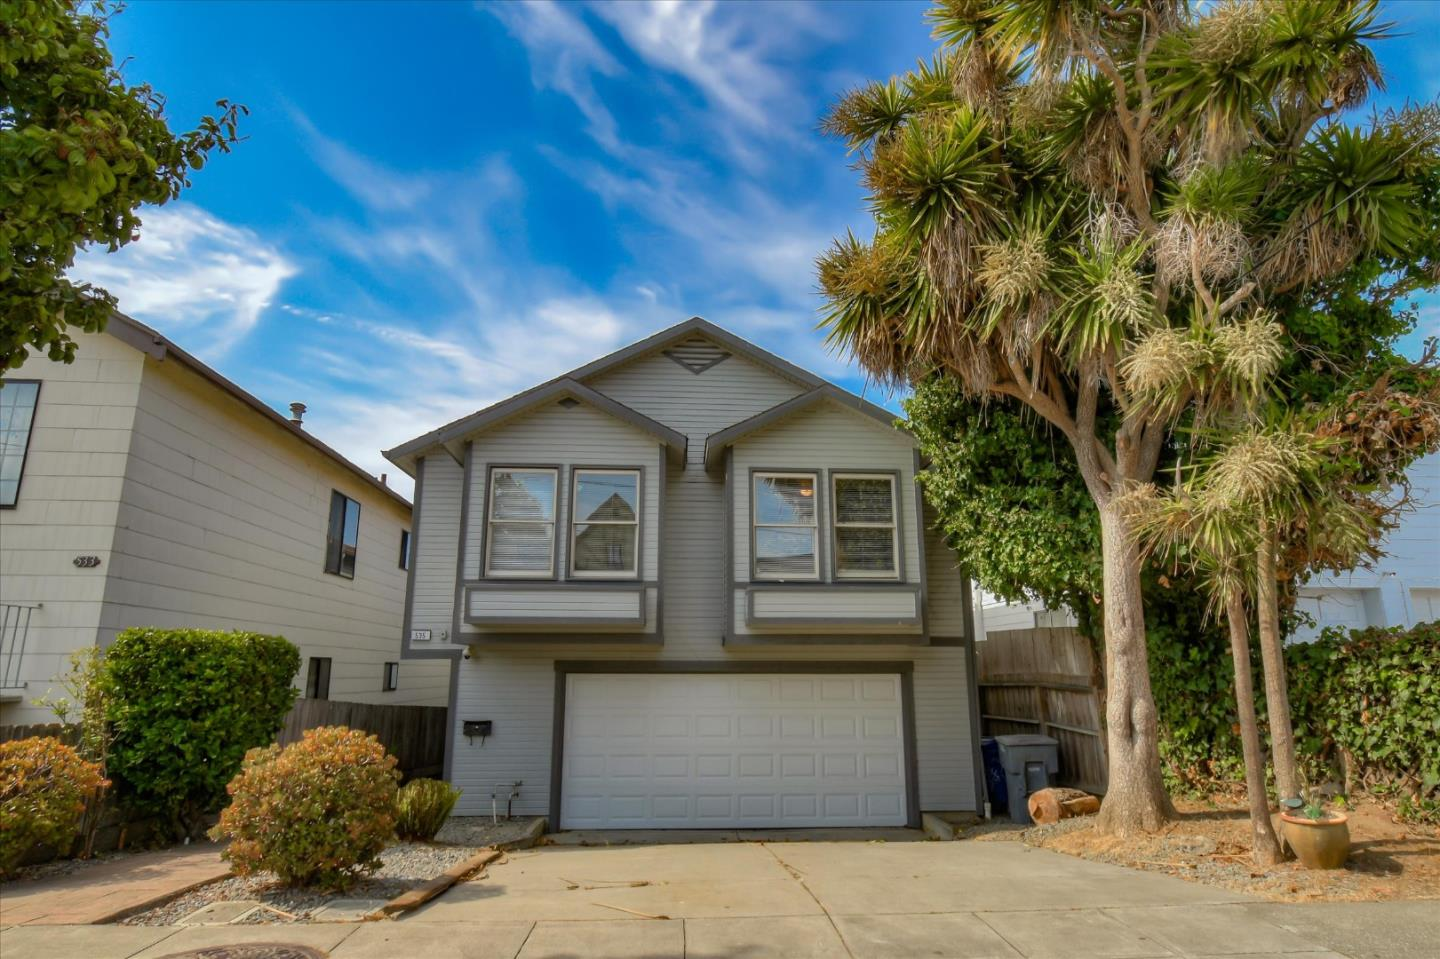 This is two SFR on one lot,  they are one parcel number and sold together.  535 Baden is a SFR, 3BR2.5BA, attached two car garage, fresh paint, new flooring and carpet.  Clean and Bright, ready to move in. 536 2nd Lane, is a SFR home,  3BR 3BA,  main level is 2BR/2BA,  attached two car garage,  bright and clean,  3rd bedroom is on the ground floor and has a separate entry through the yard or garage. Great Setup for an extended family, owner that wants to add some rental income or an investor owner.